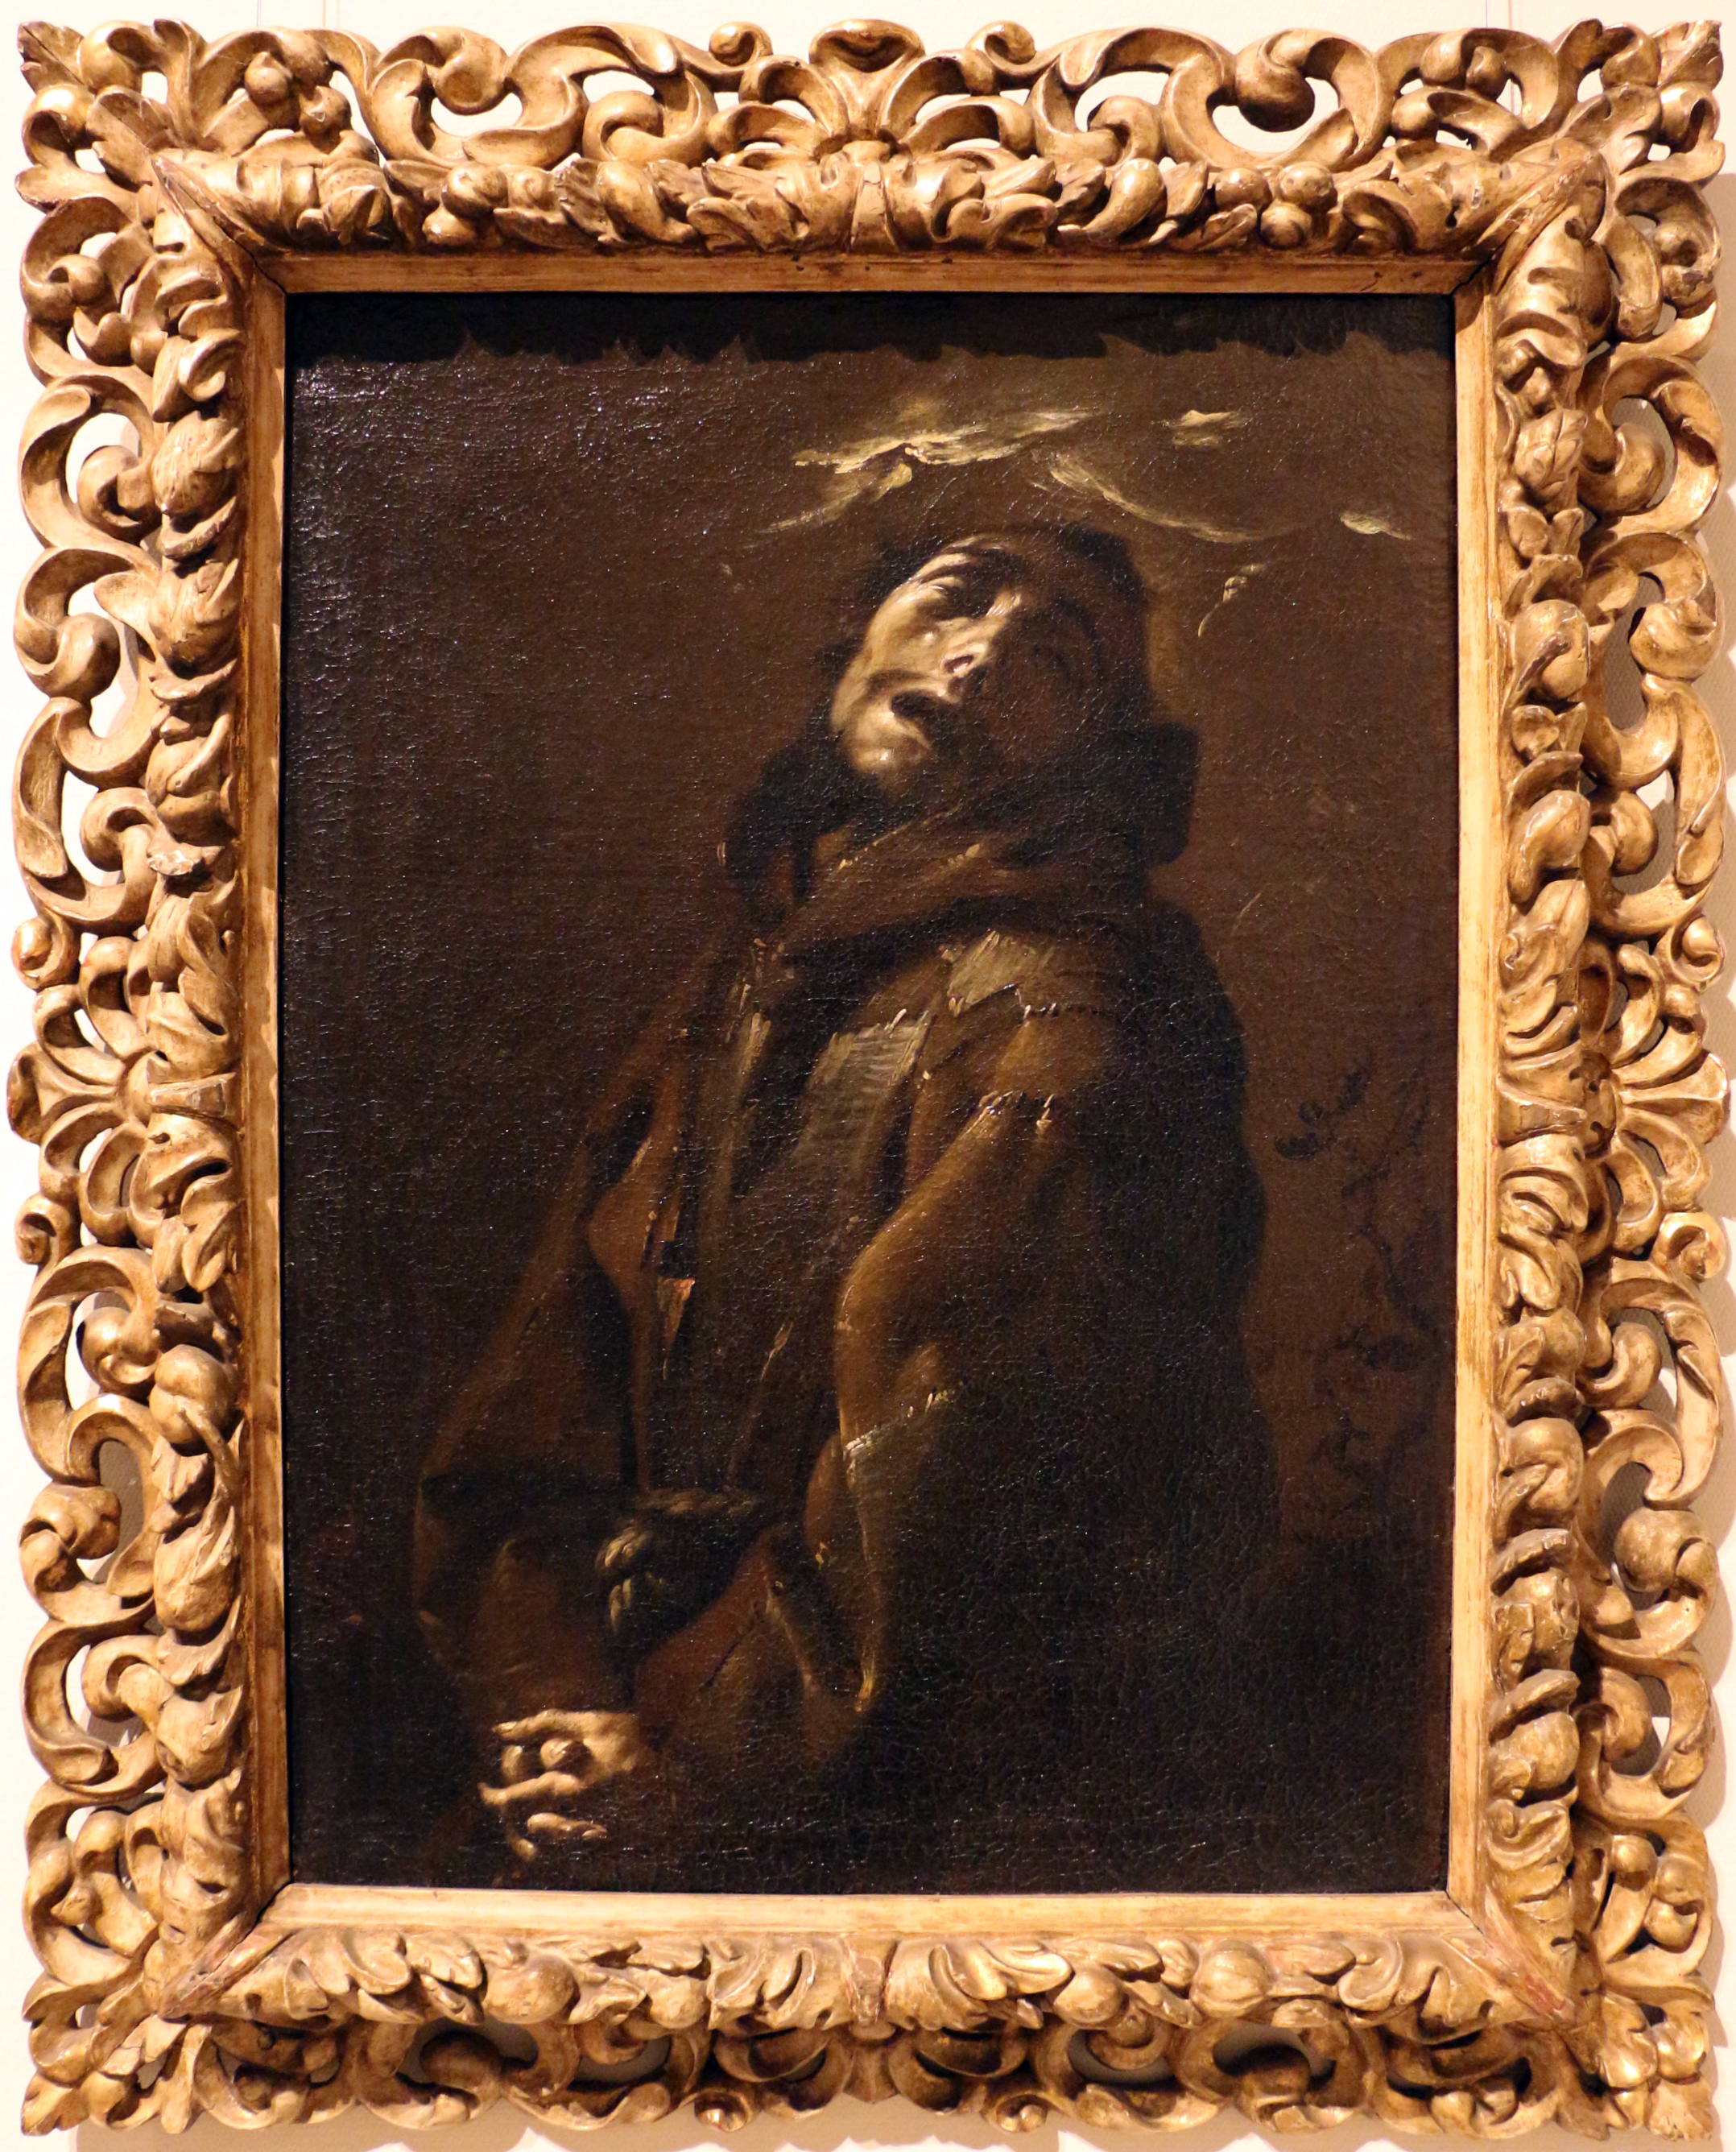 File:Francesco cairo, san francesco in estasi, 1633-35.JPG